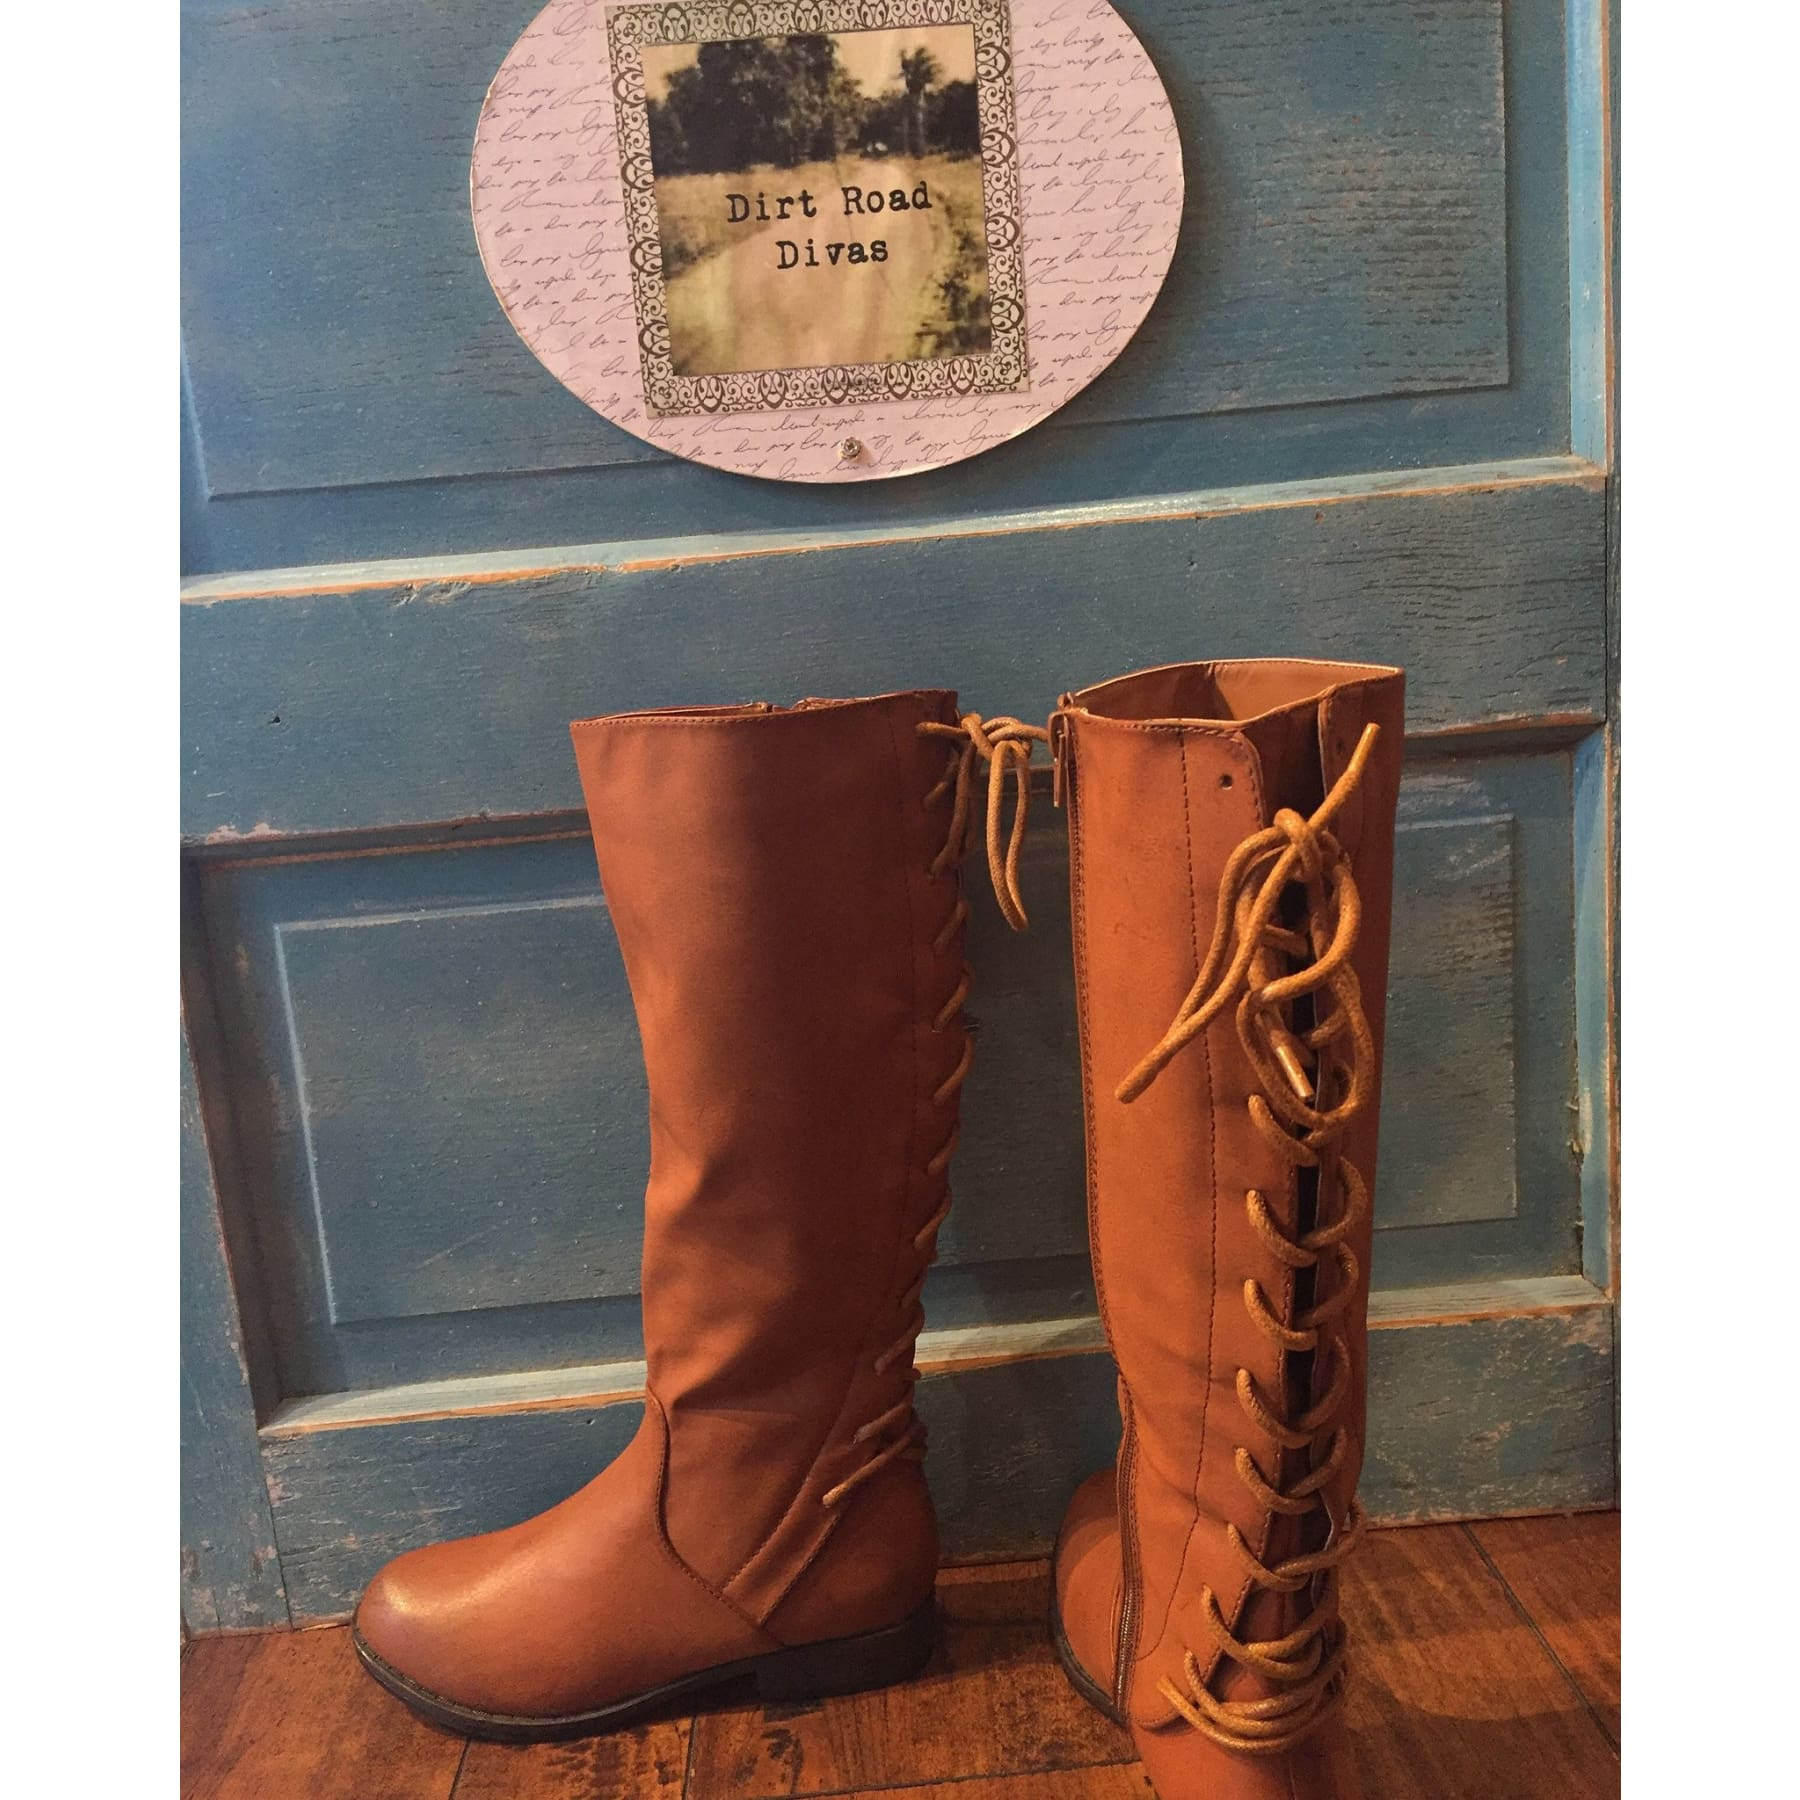 Brown Lace Up Riding Boots,Boots - Dirt Road Divas Boutique